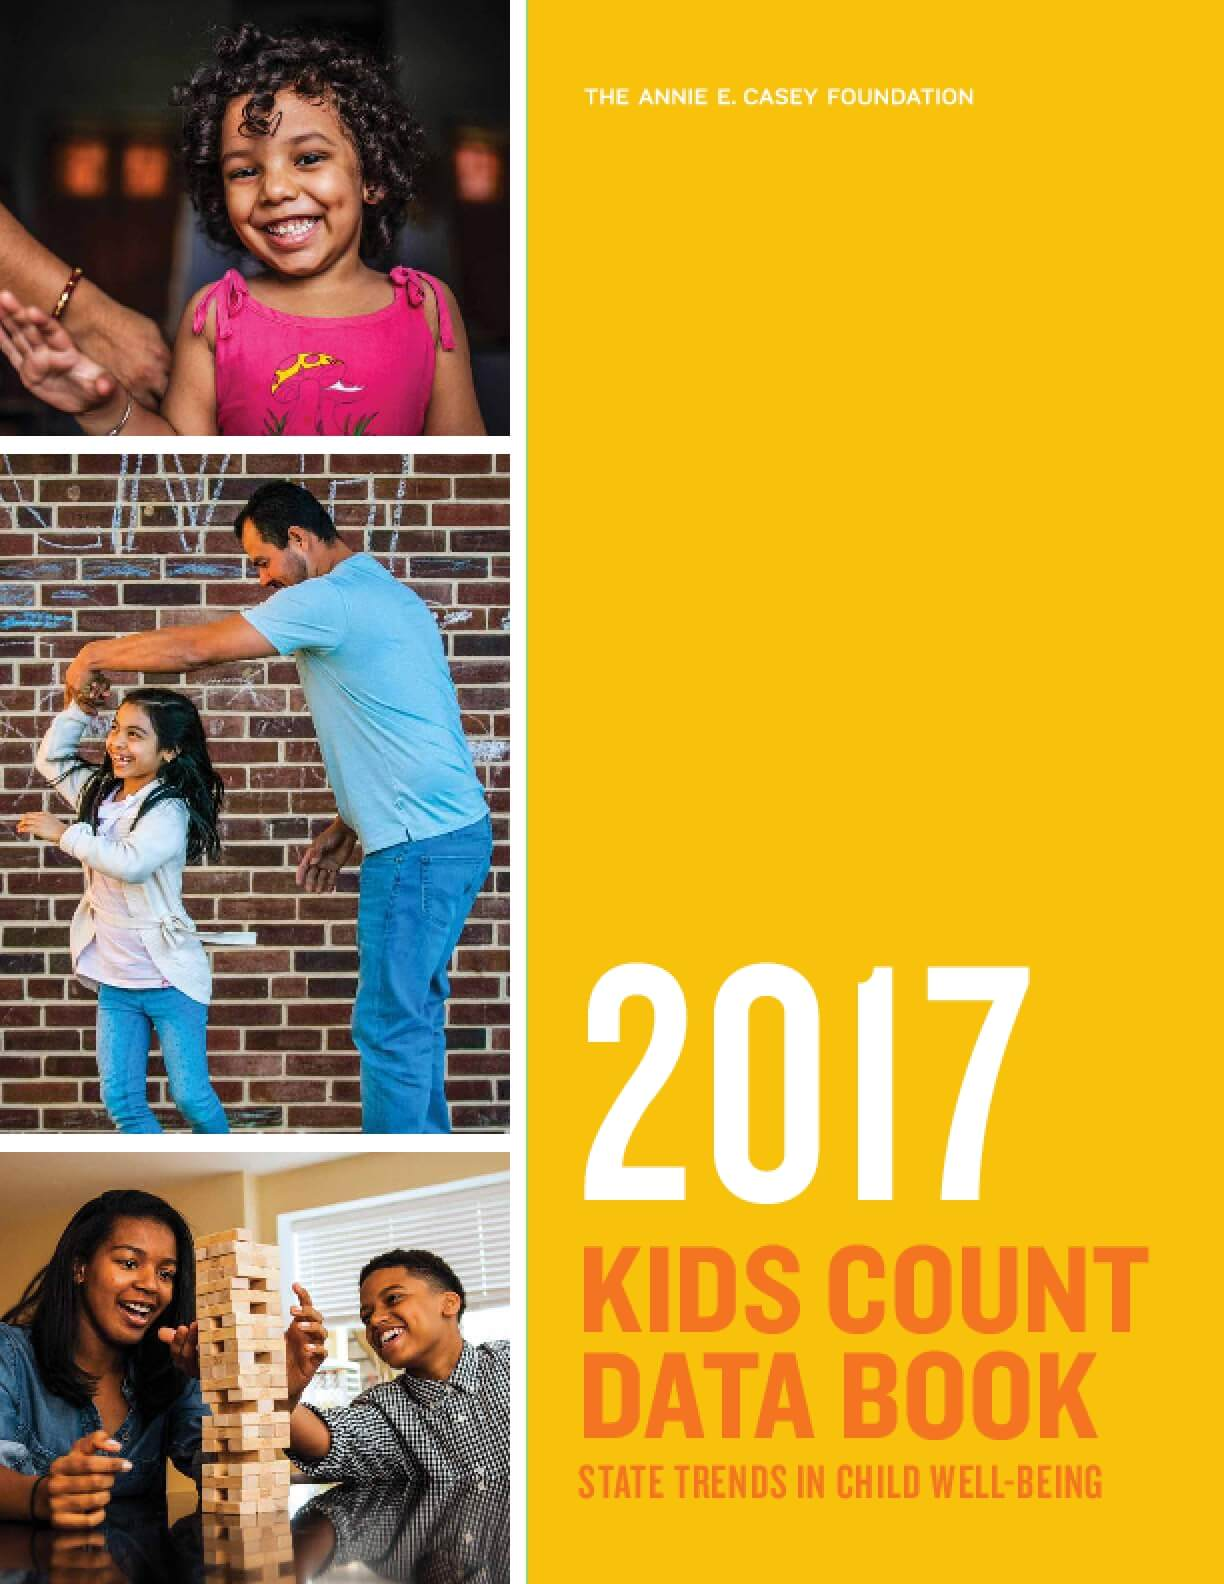 2017 Kids Count Data Book: State Trends in Child Well-Being